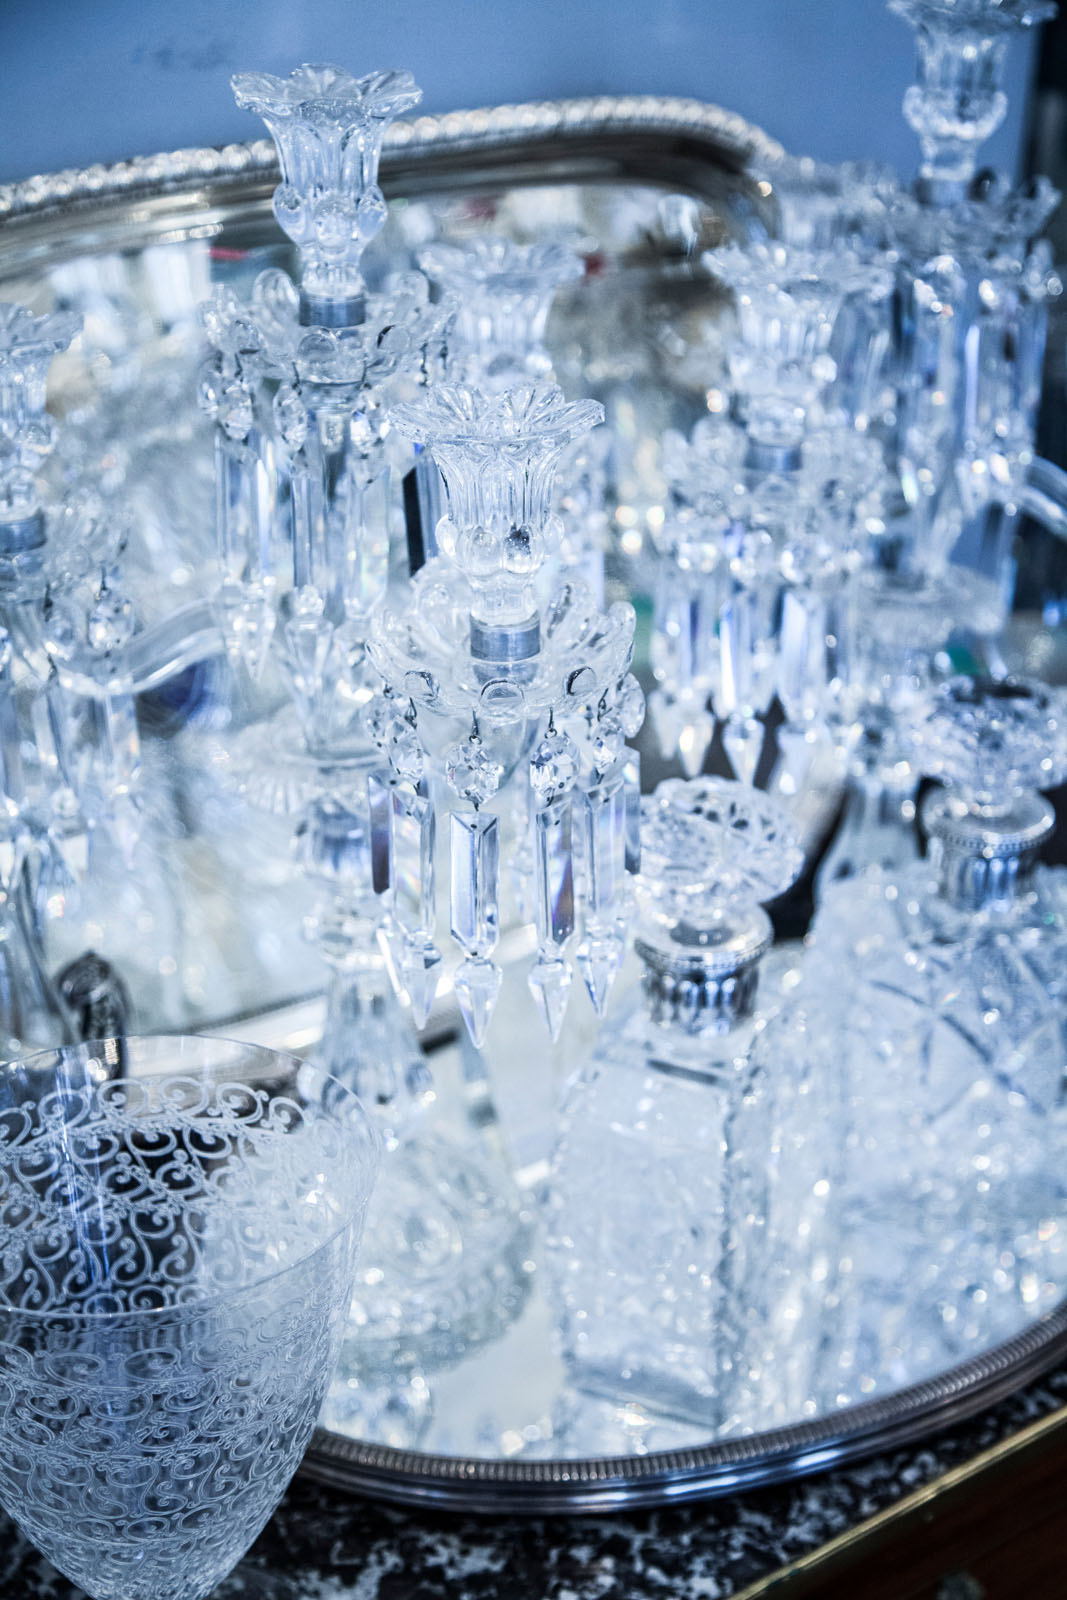 Cassiopée in Le Village Saint-Paul is a treasure trove of vintage glassware and tableware